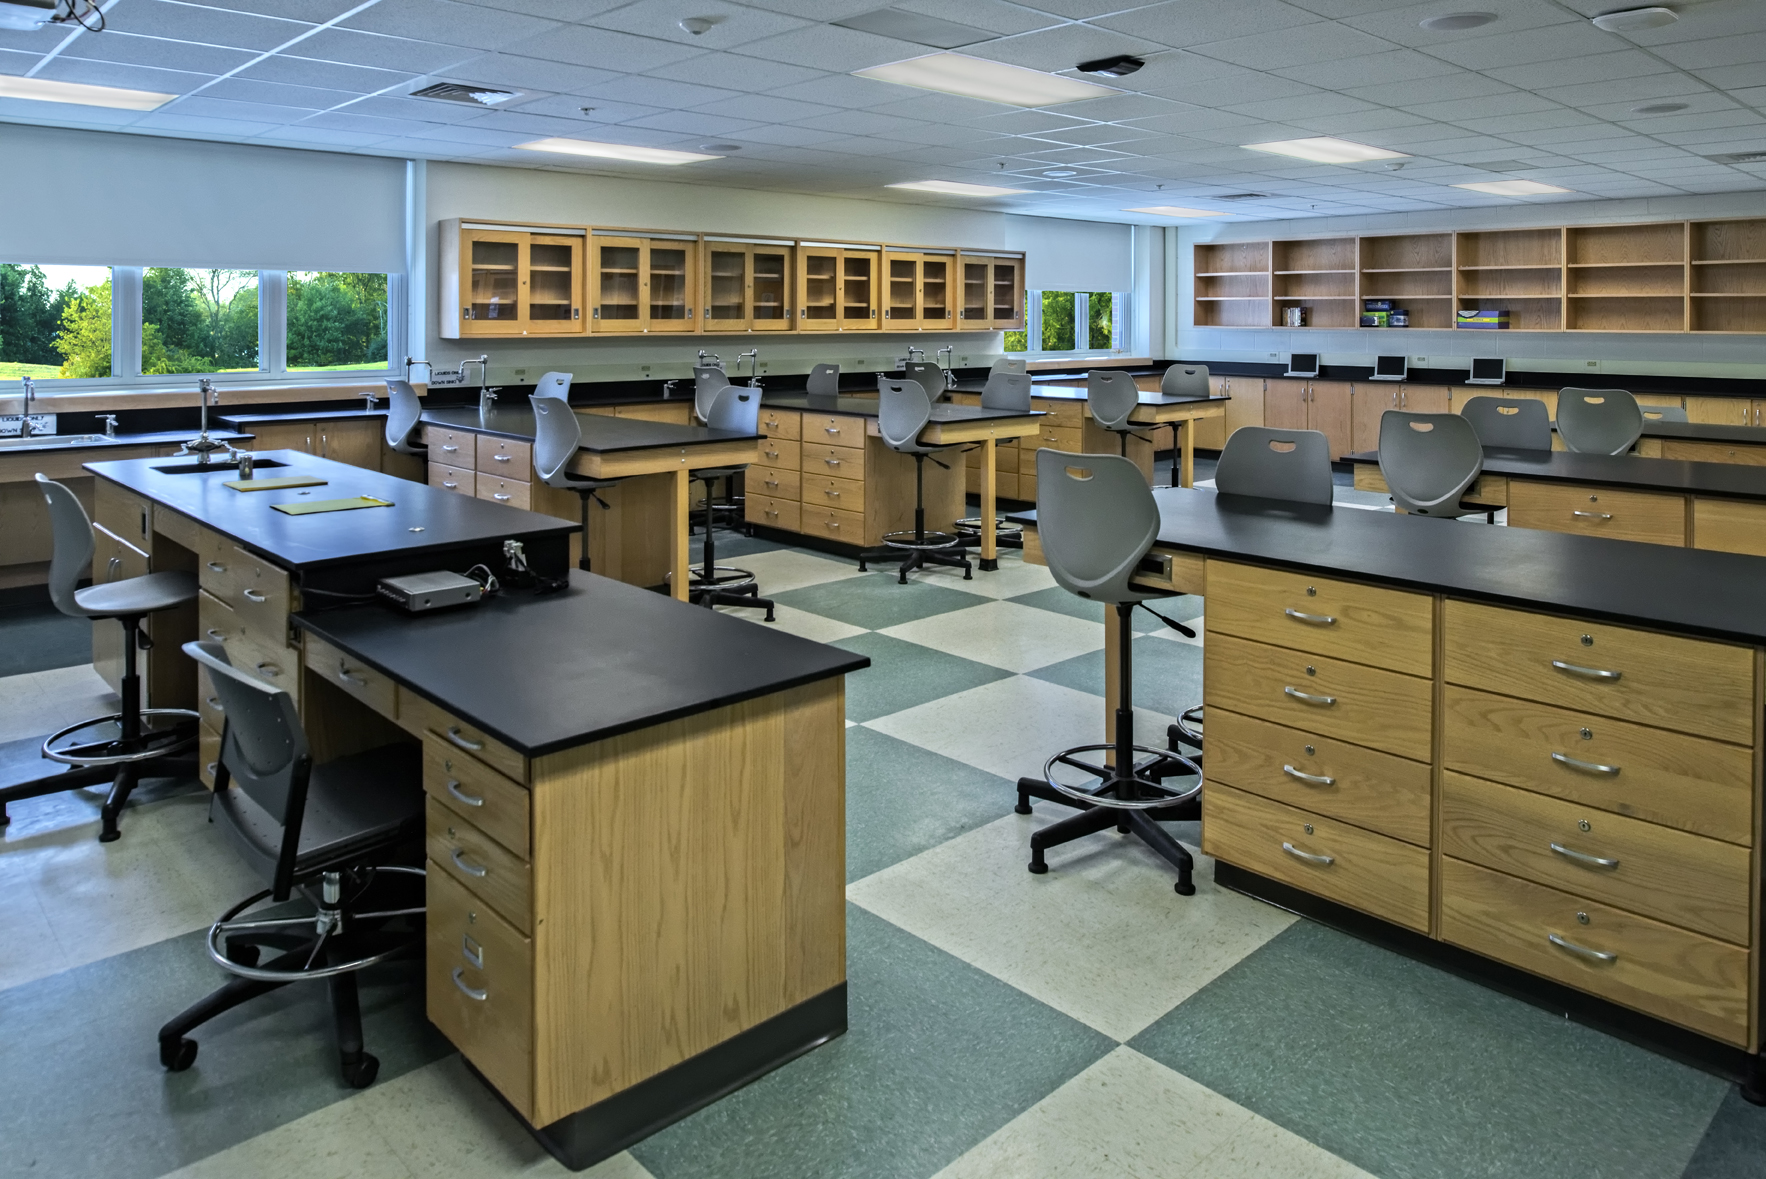 new-science-classroom